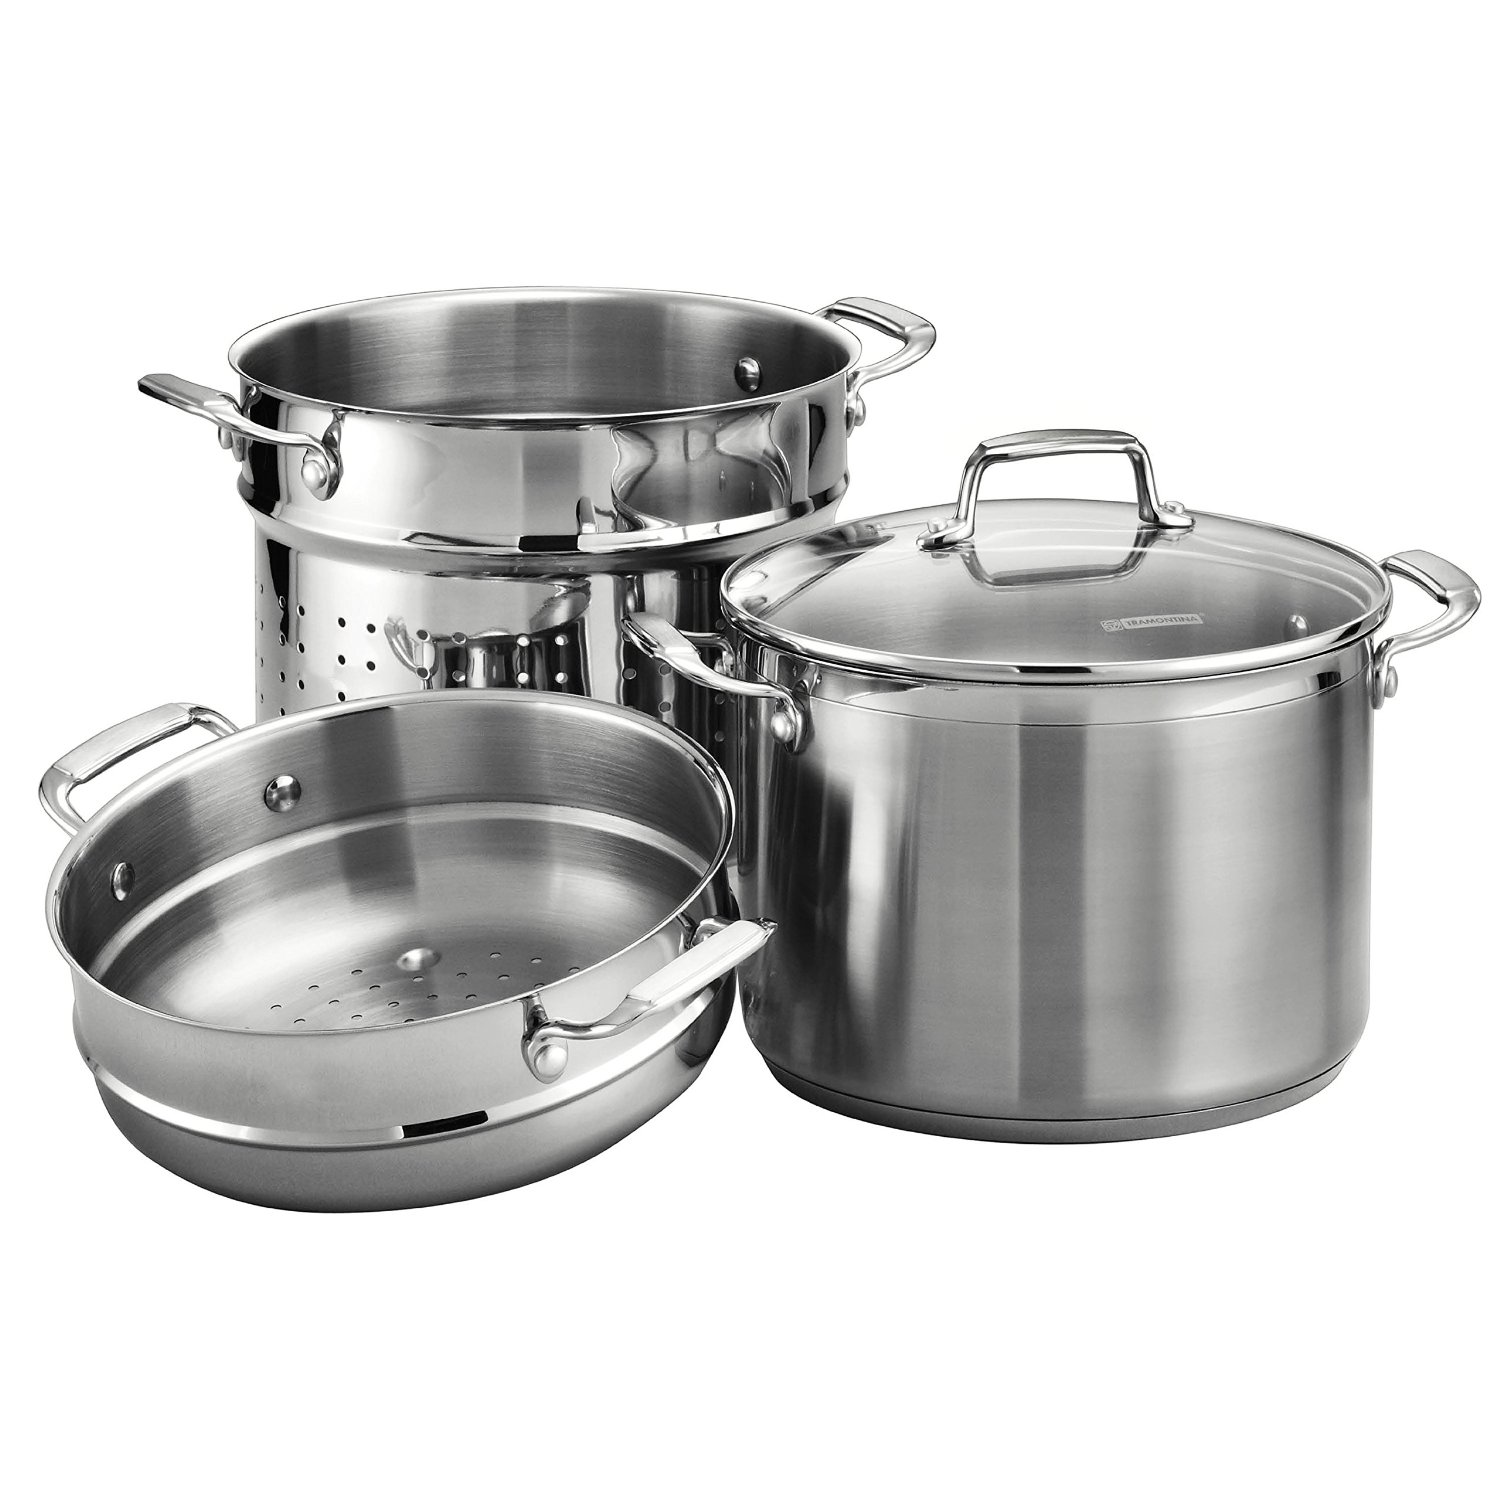 Amazon Cuisinart Stock Pot Tramontina 8 Quart Stainless Steel Pasta Pot Cooker